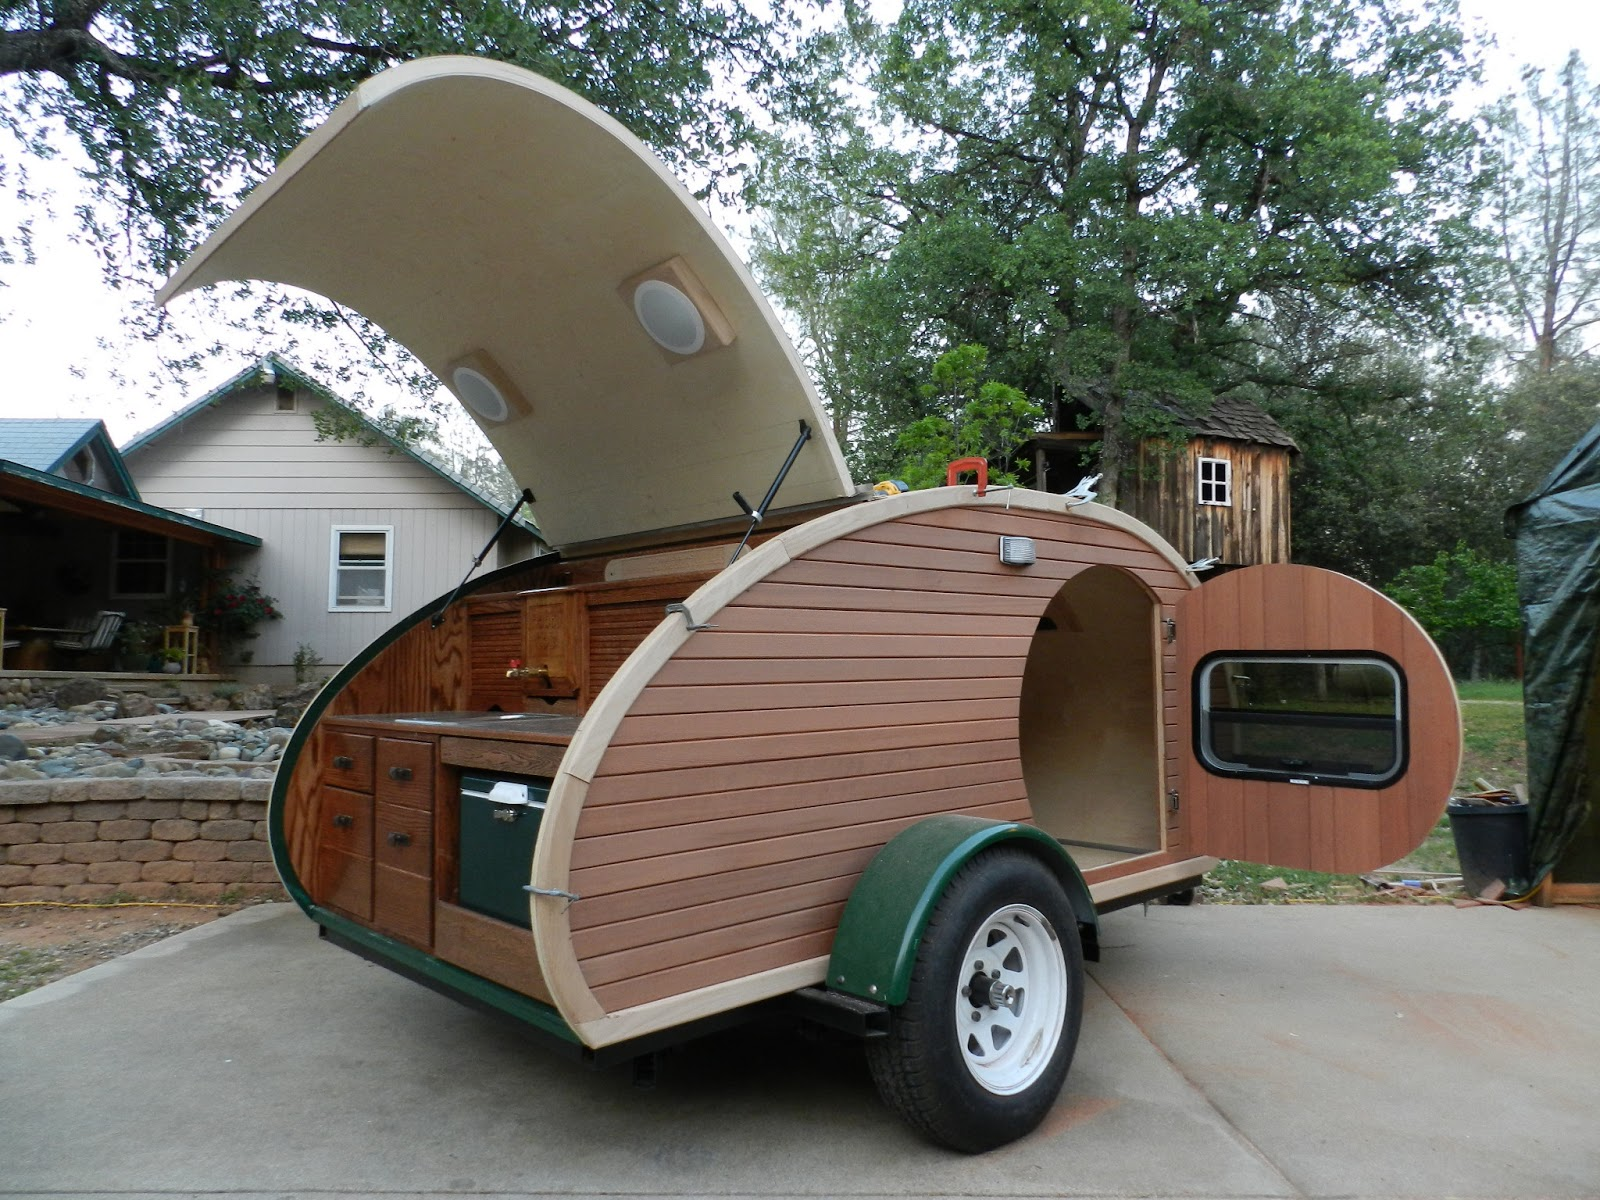 Unique If Your Class C Camper Or Trailer Is Still Winterized, Its Not Too Late To Get Summerready Youll Want To Begin Your Preparations A Week Or More Before Your First